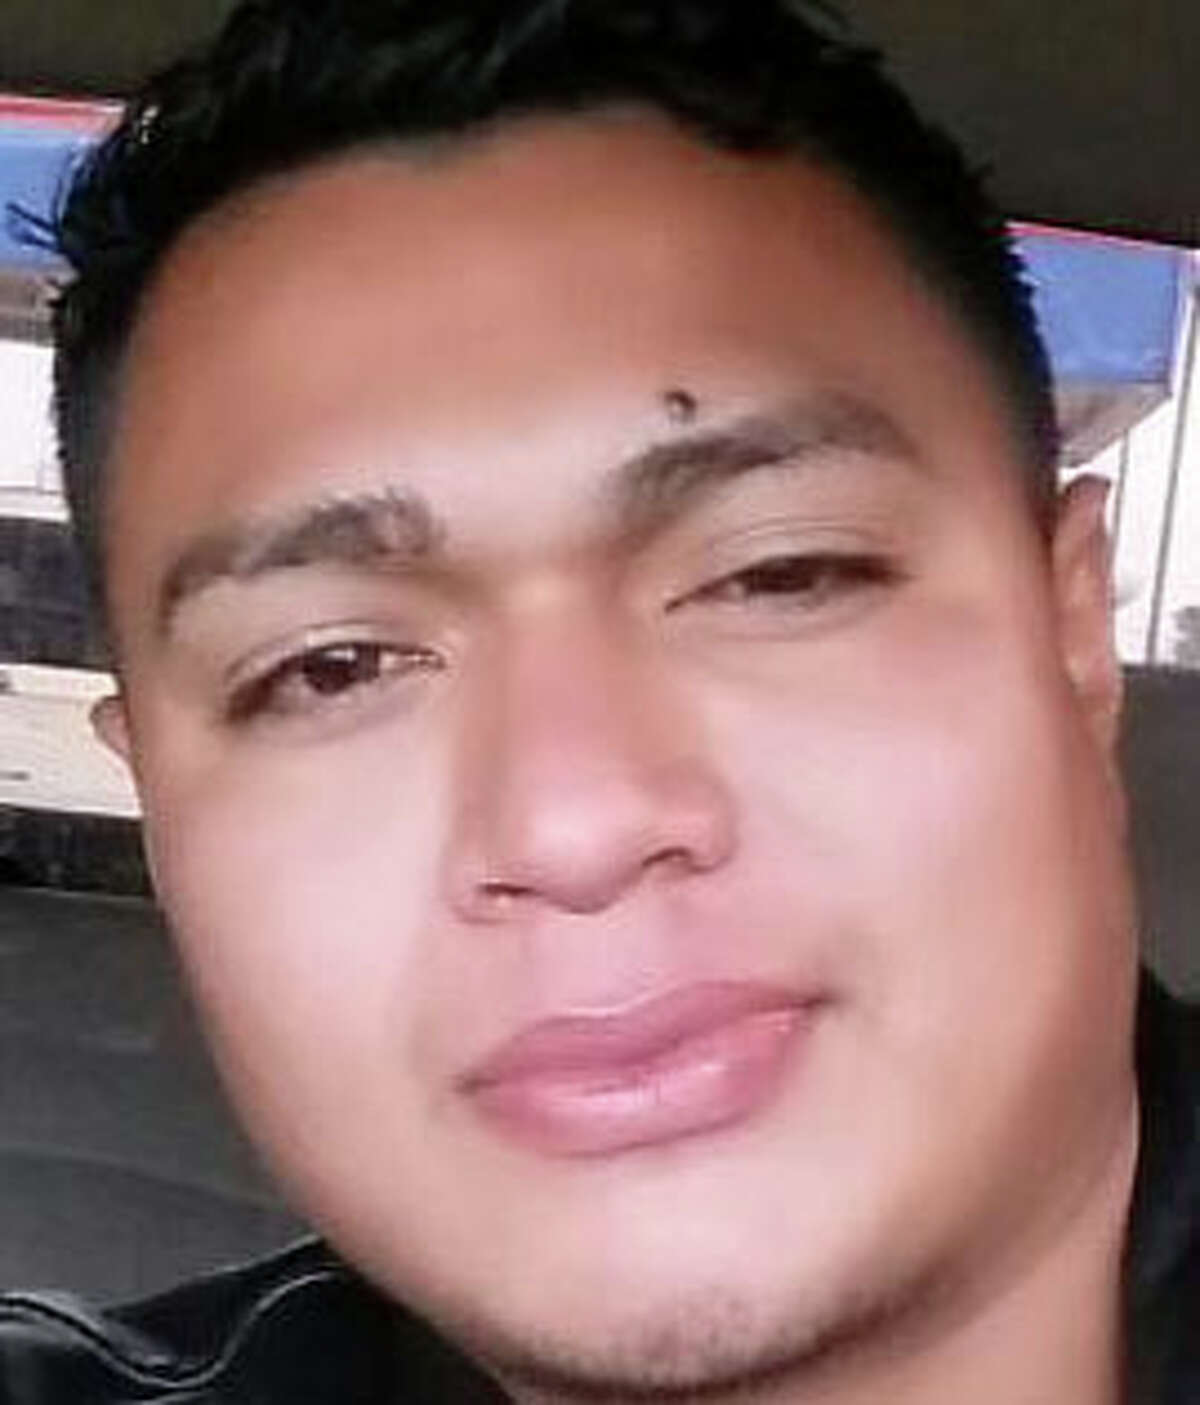 Wilson Rivera-Madrid, 27, is wanted on a murder charge for allegedly killing Cindi Fajardo, 32, in February 2019.